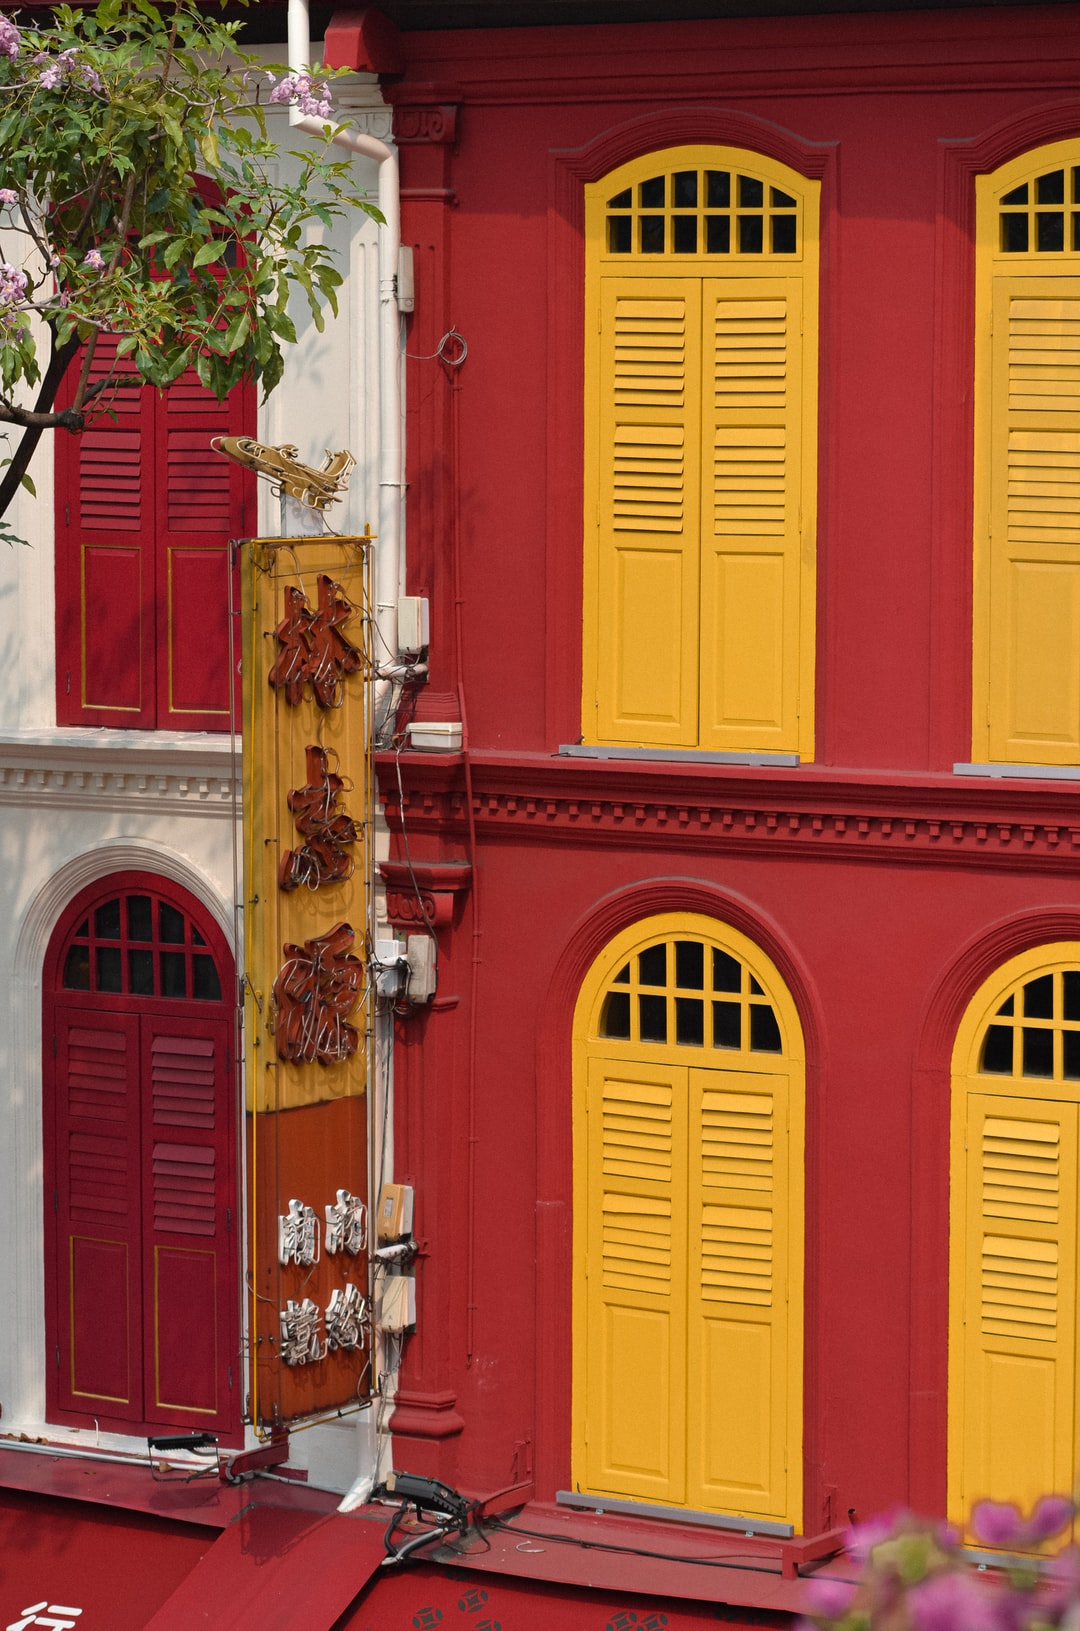 Red and Yellow shutters